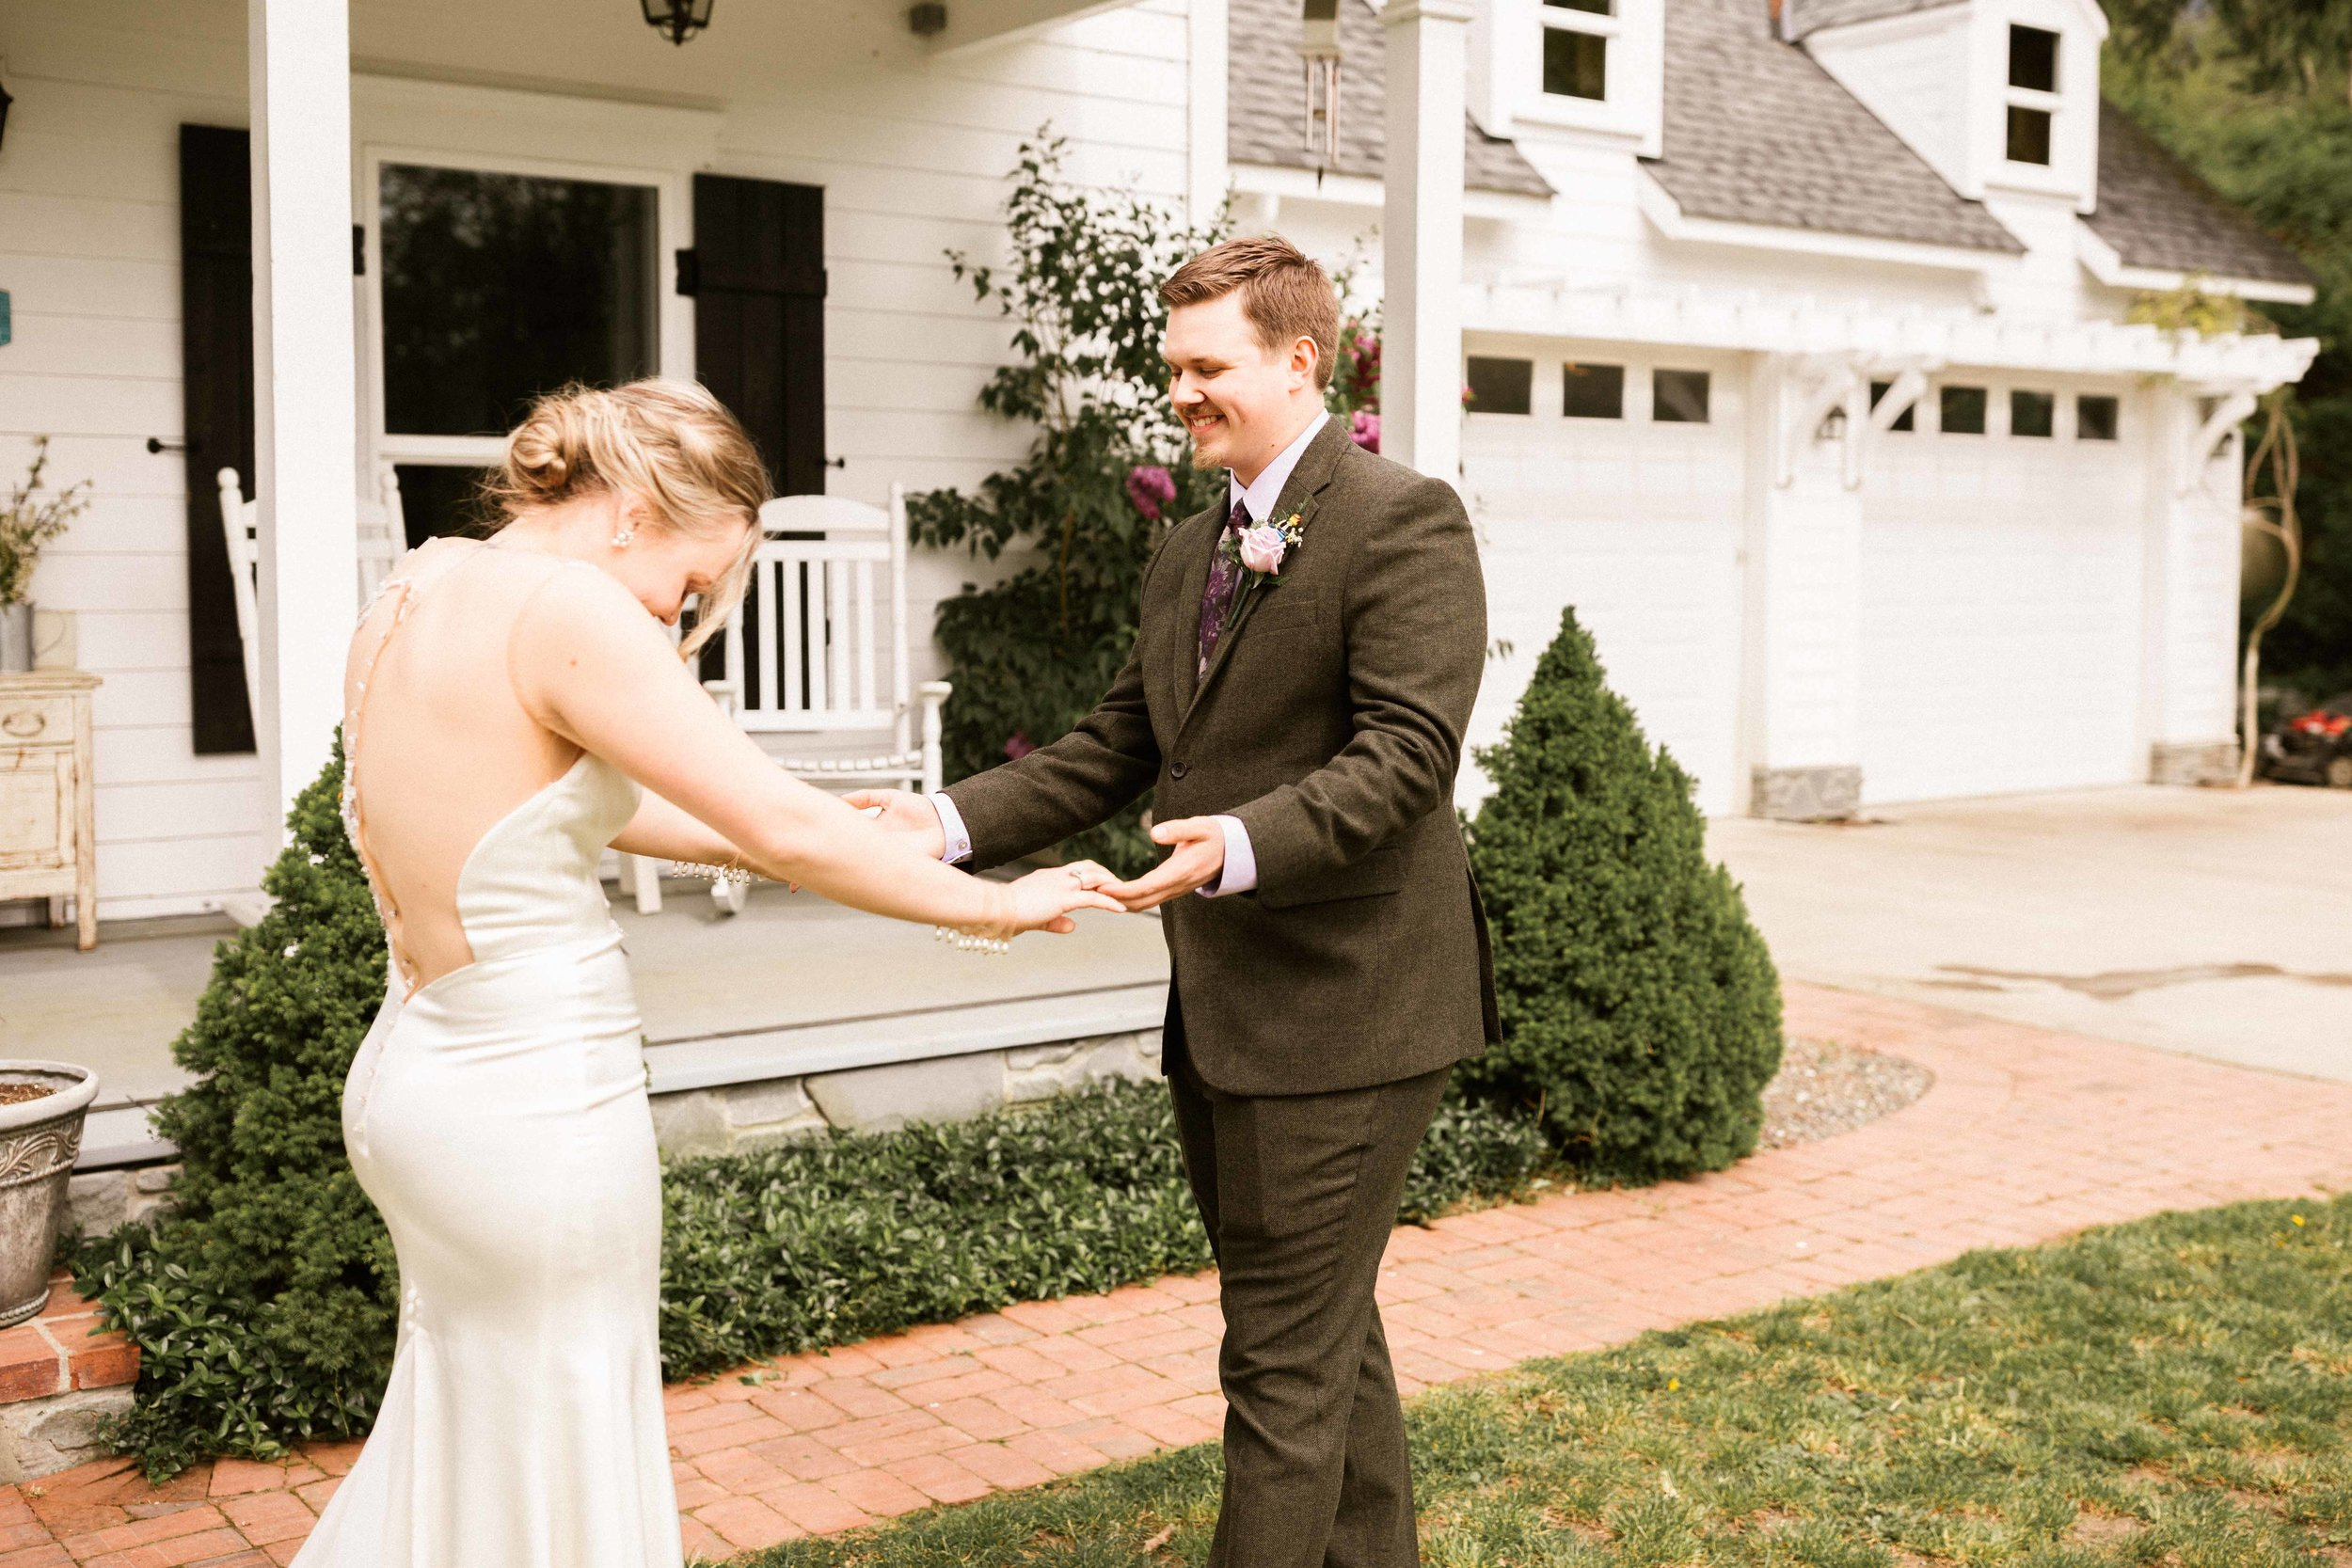 everson-barn-wedding-41.jpg